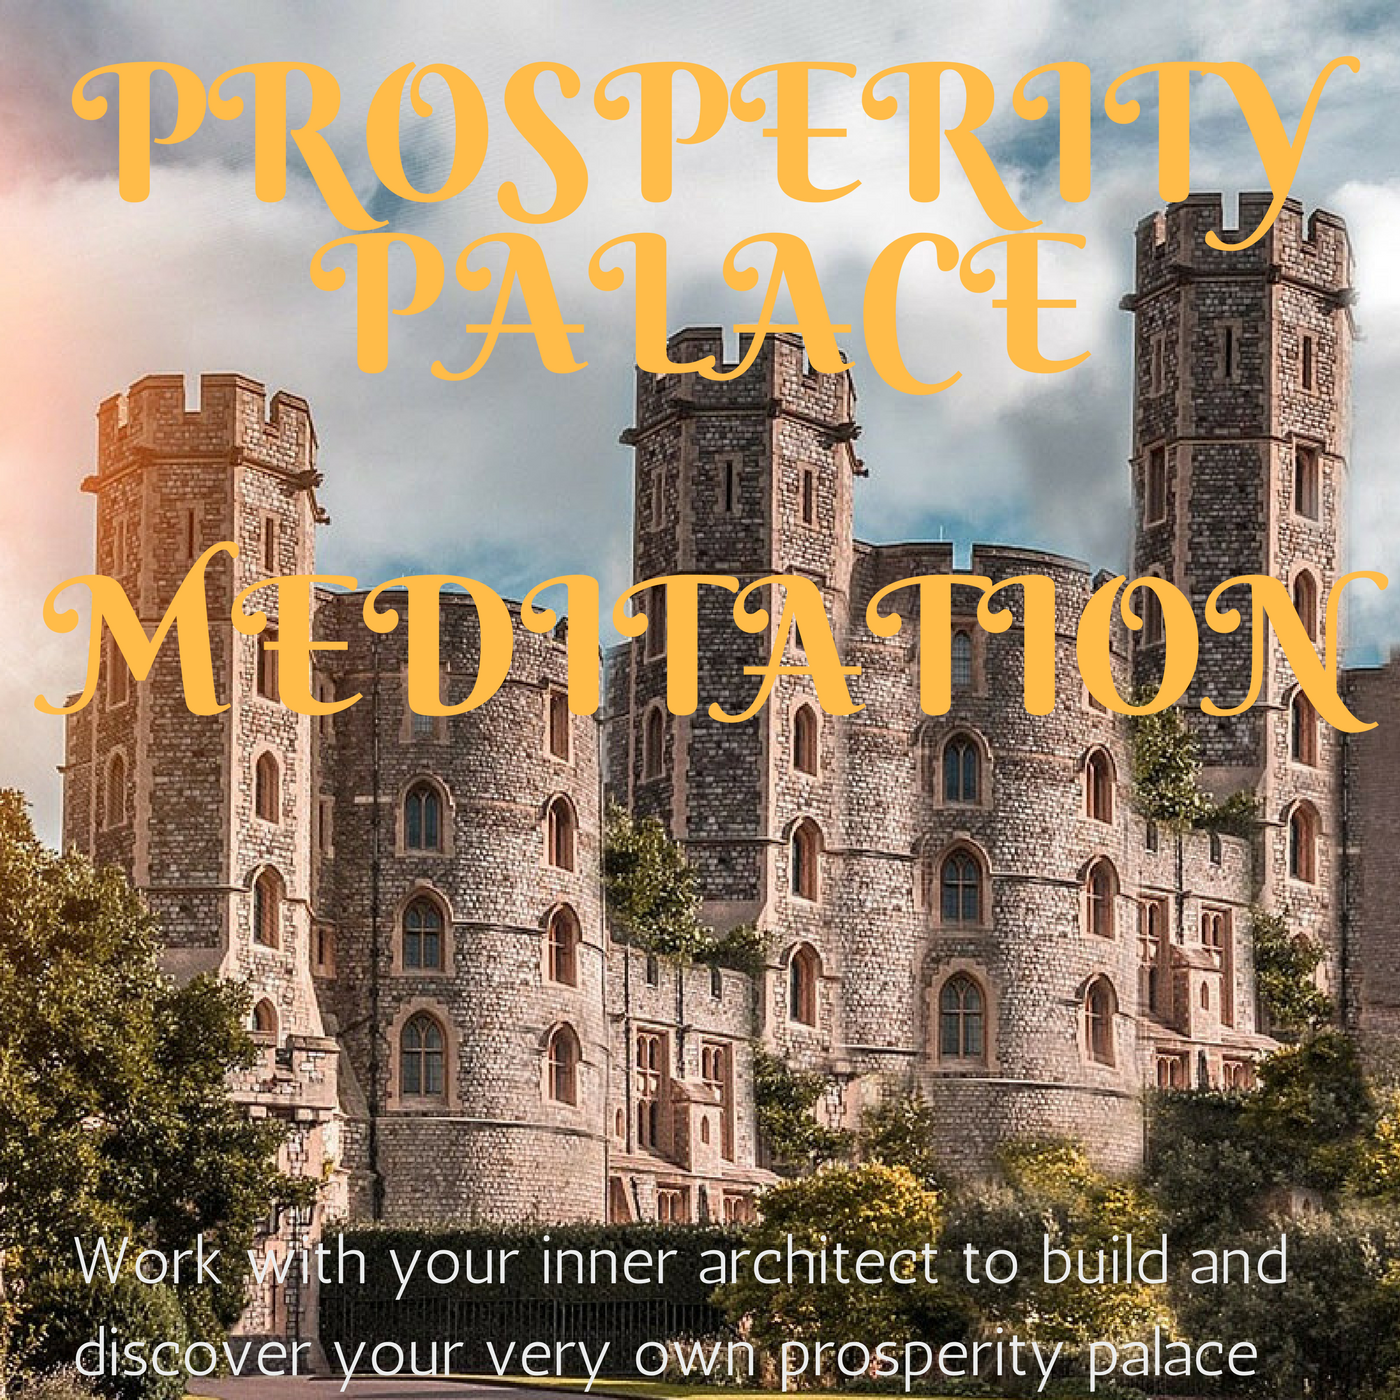 Prosperity Palace Meditation